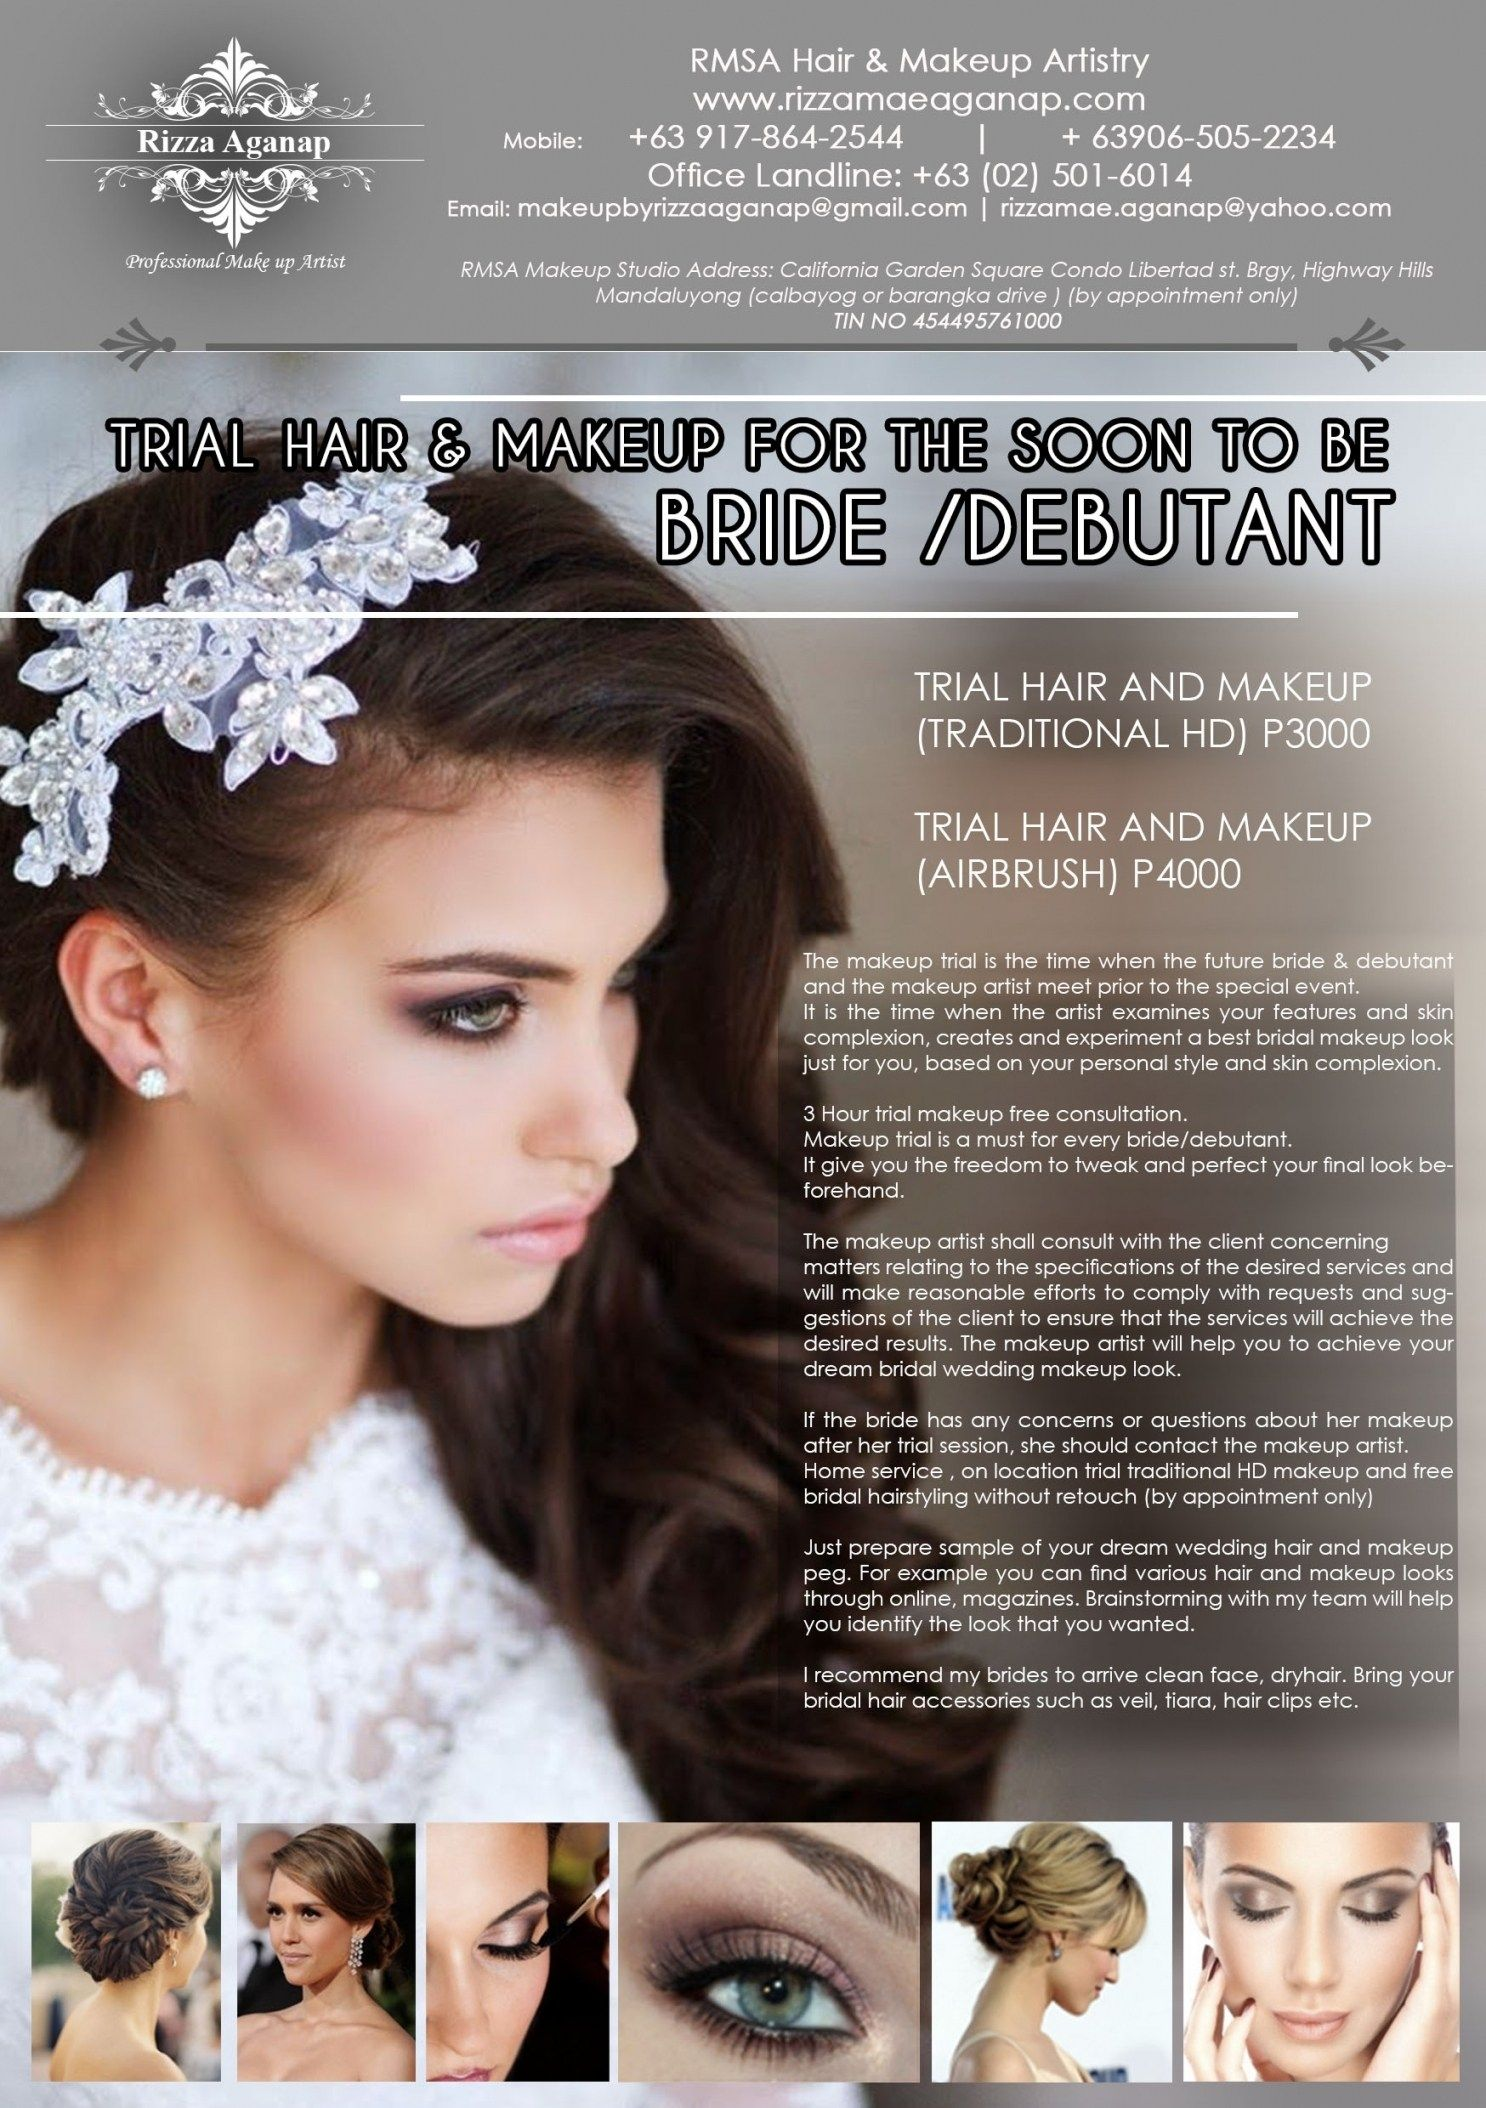 wedding hair and makeup trial cost | hairstyles ideas for me